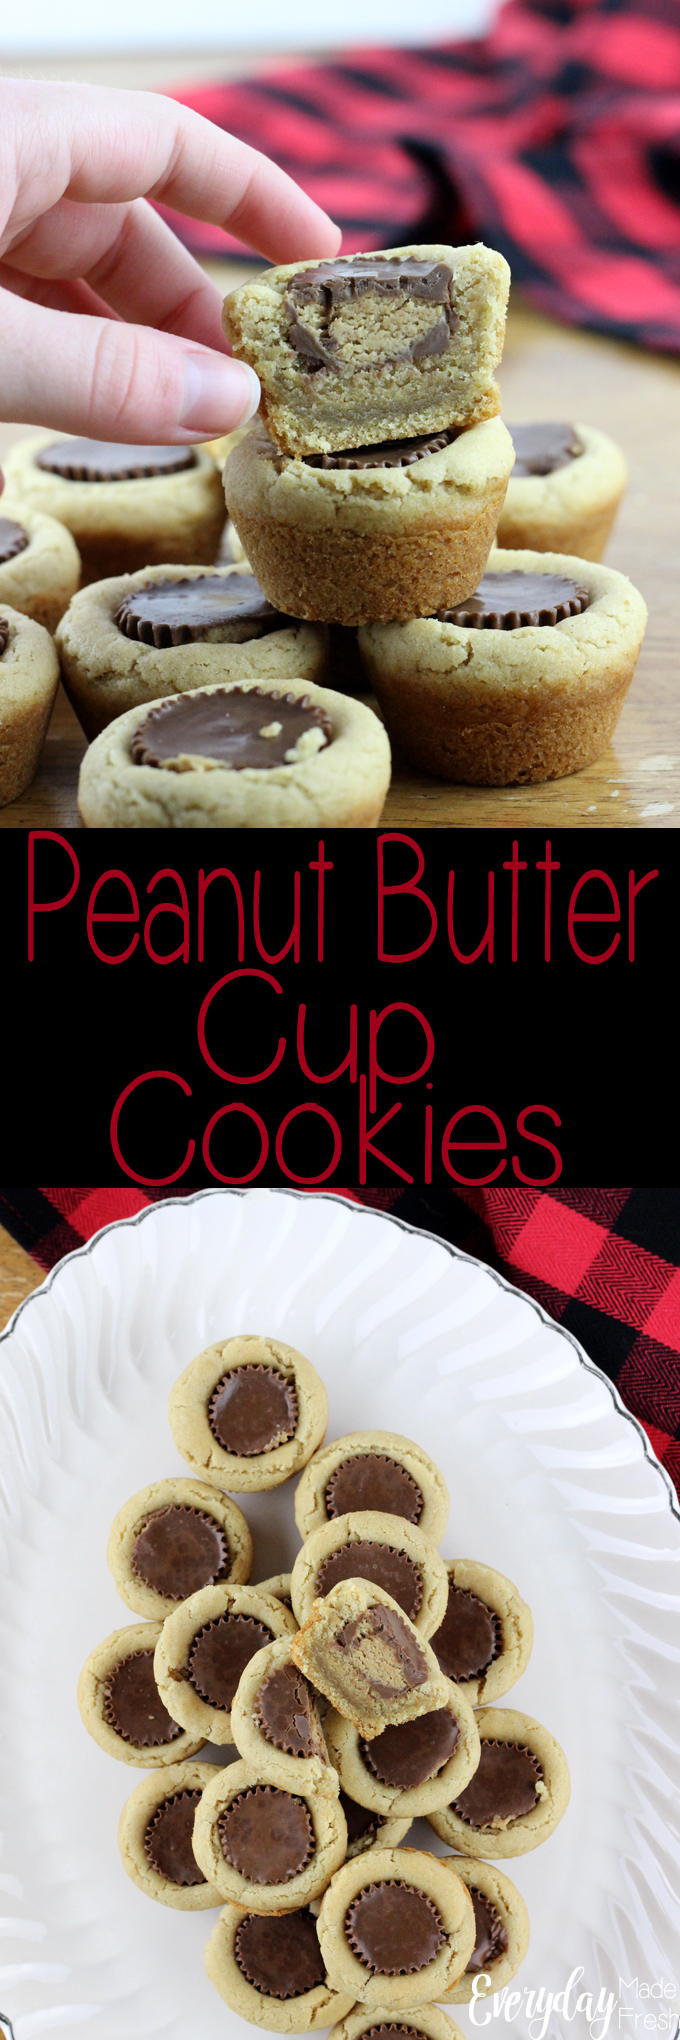 These Peanut Butter Cup Cookies are a classic Christmas cookie, and with good reason. They are simple to make and tasty! | EverydayMadeFresh.com